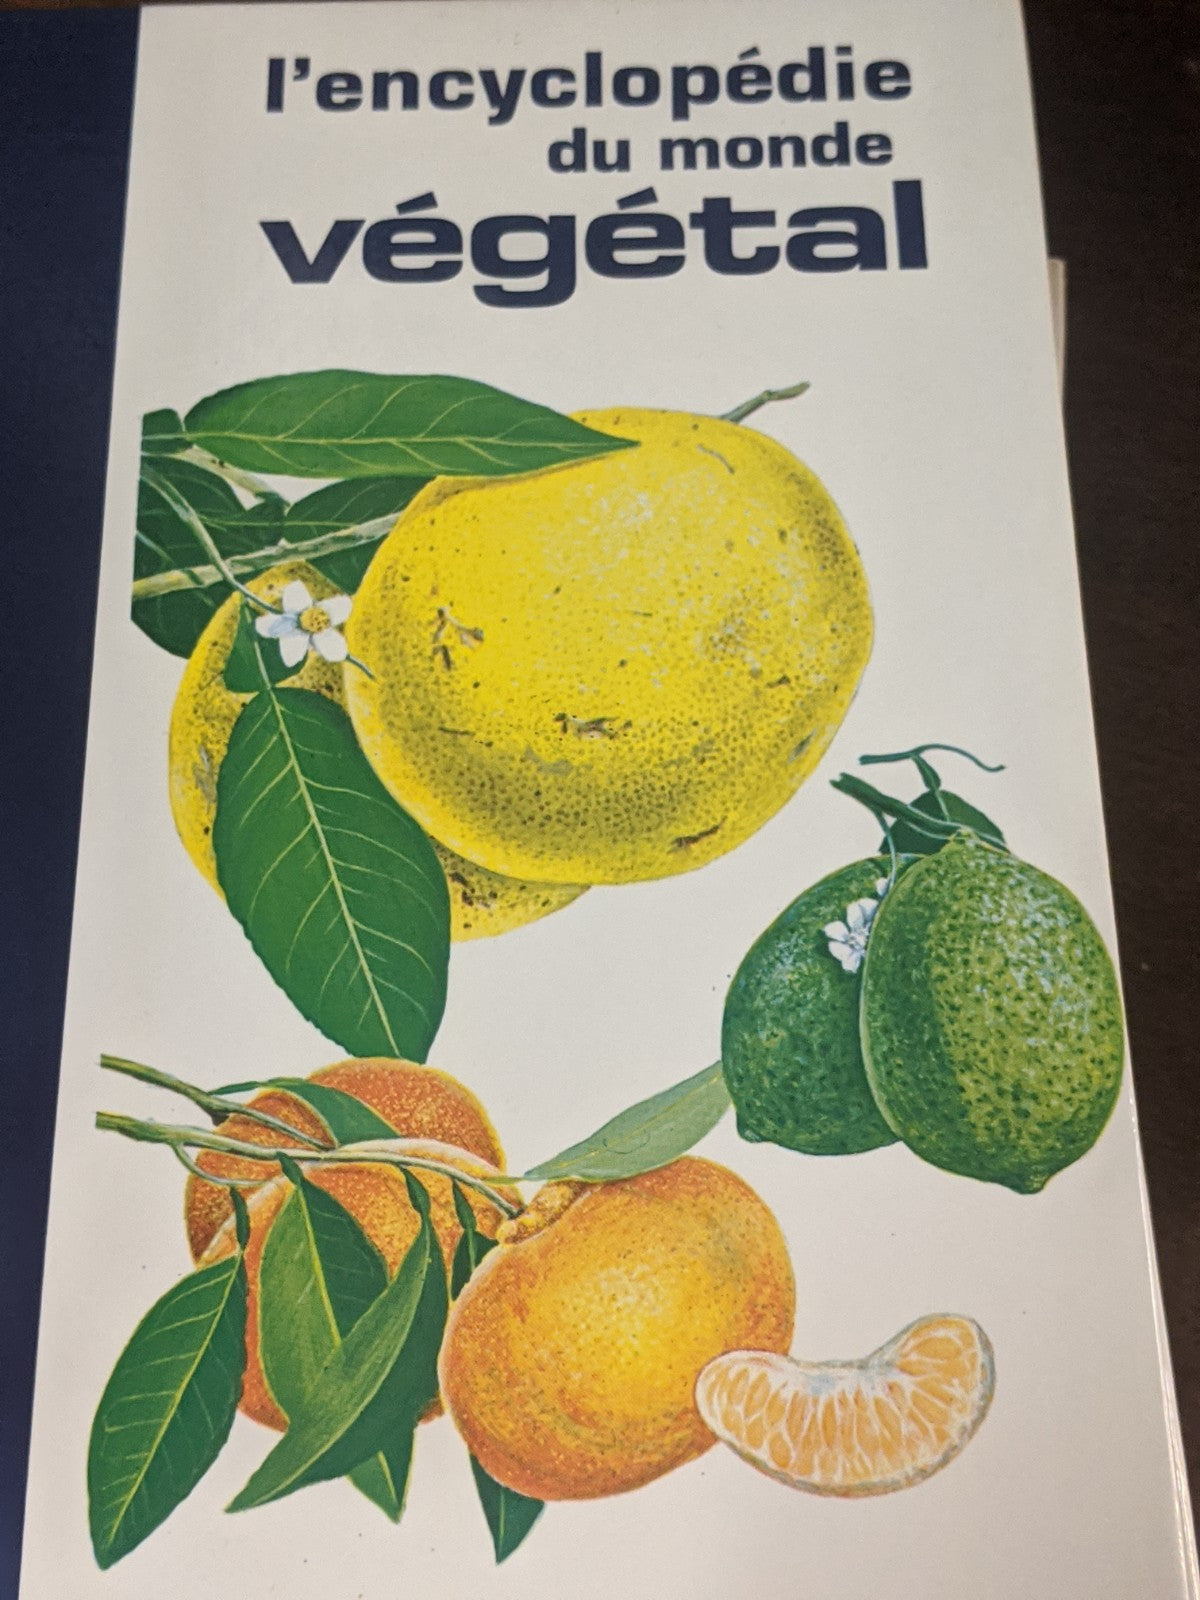 L'encyclopedie du Monde Vegetal, vols. 1 through 4, 19